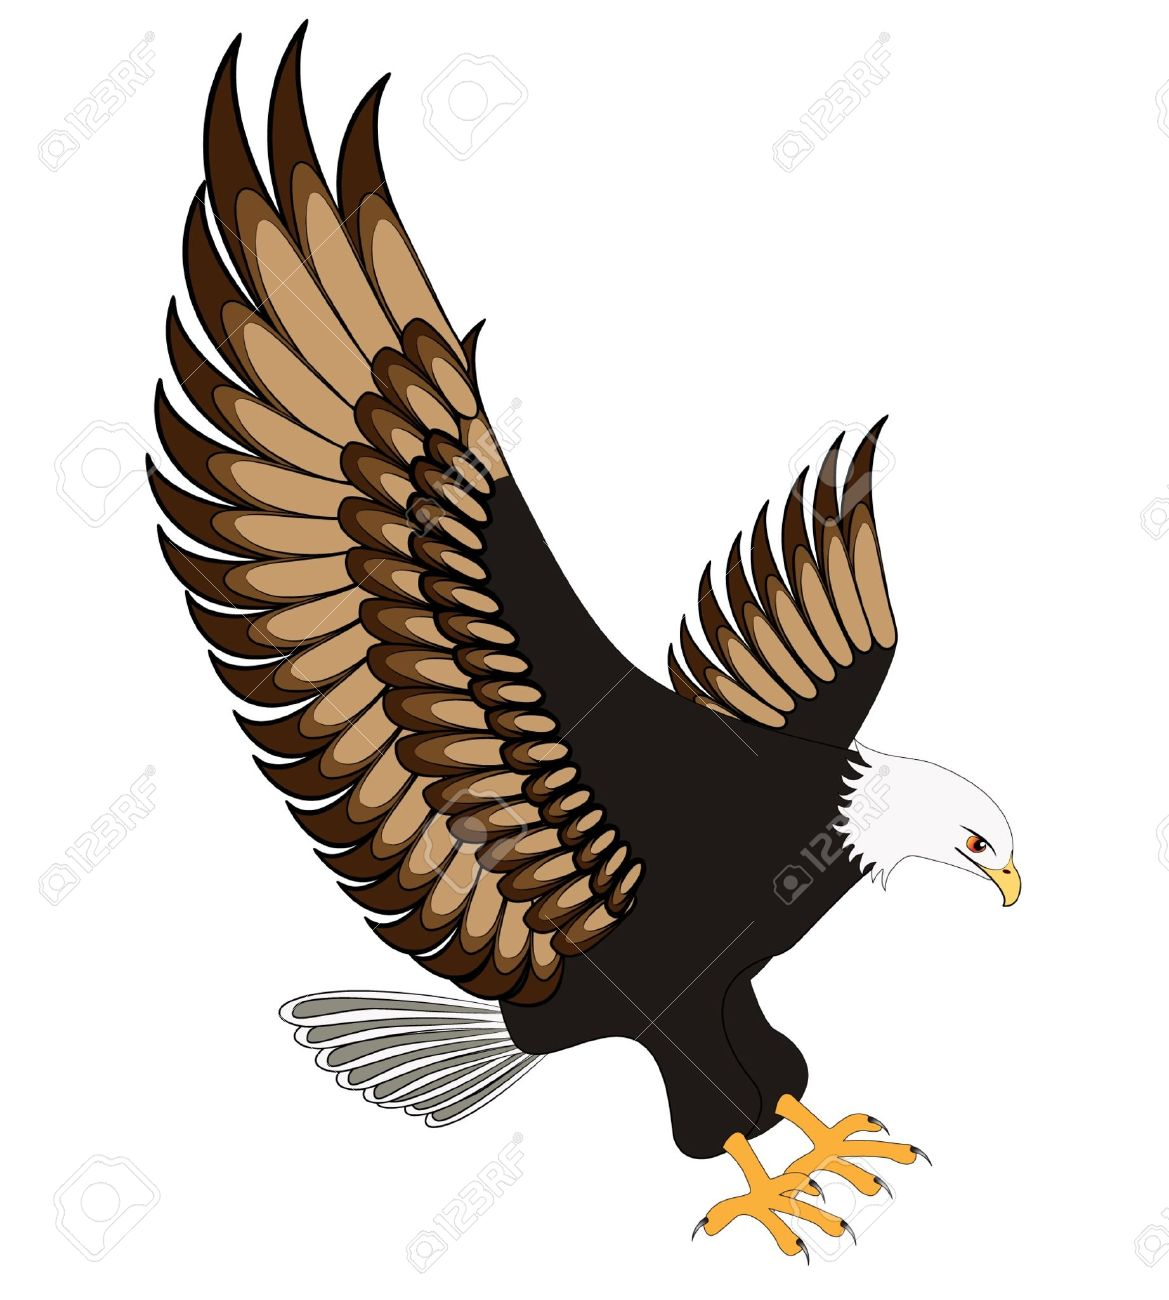 illustration flying eagle insulated on white background royalty free rh 123rf com free flying eagle clipart flying eagle images clip art